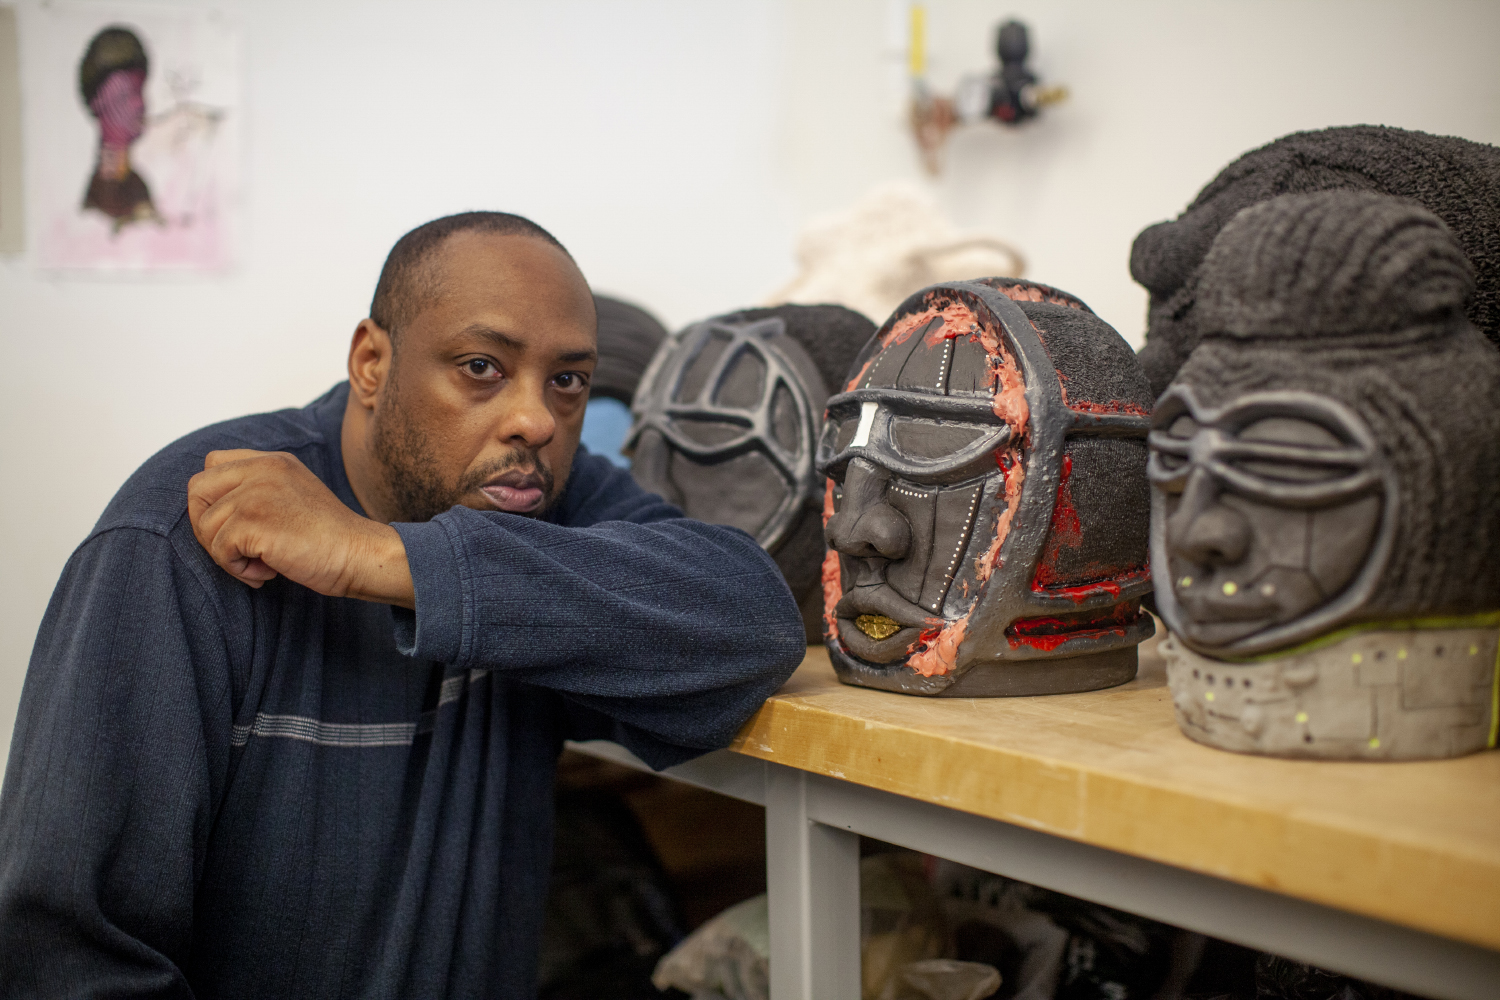 University of Iowa ceramics graduate student Donté K. Hayes poses for a portrait in his studio on Wednesday, April 24, 2019. During the event, students presented projects that combined art and engineering.